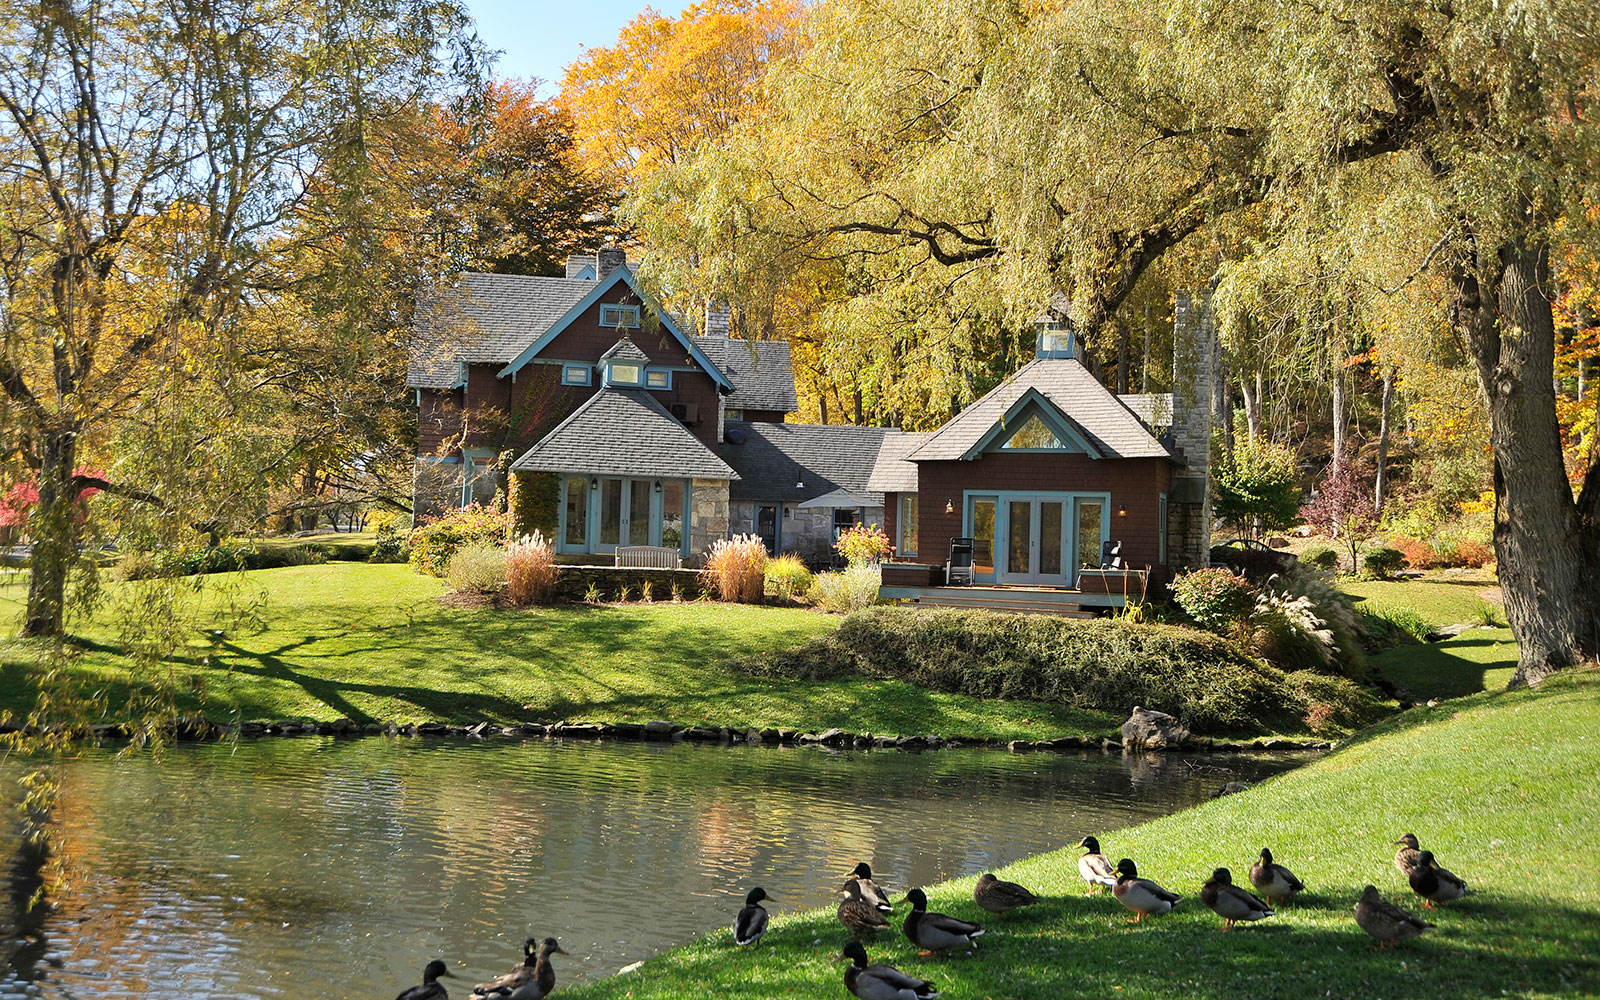 America's Best Hotels for Fall Colors: Stonover Farm, Lenox, MA